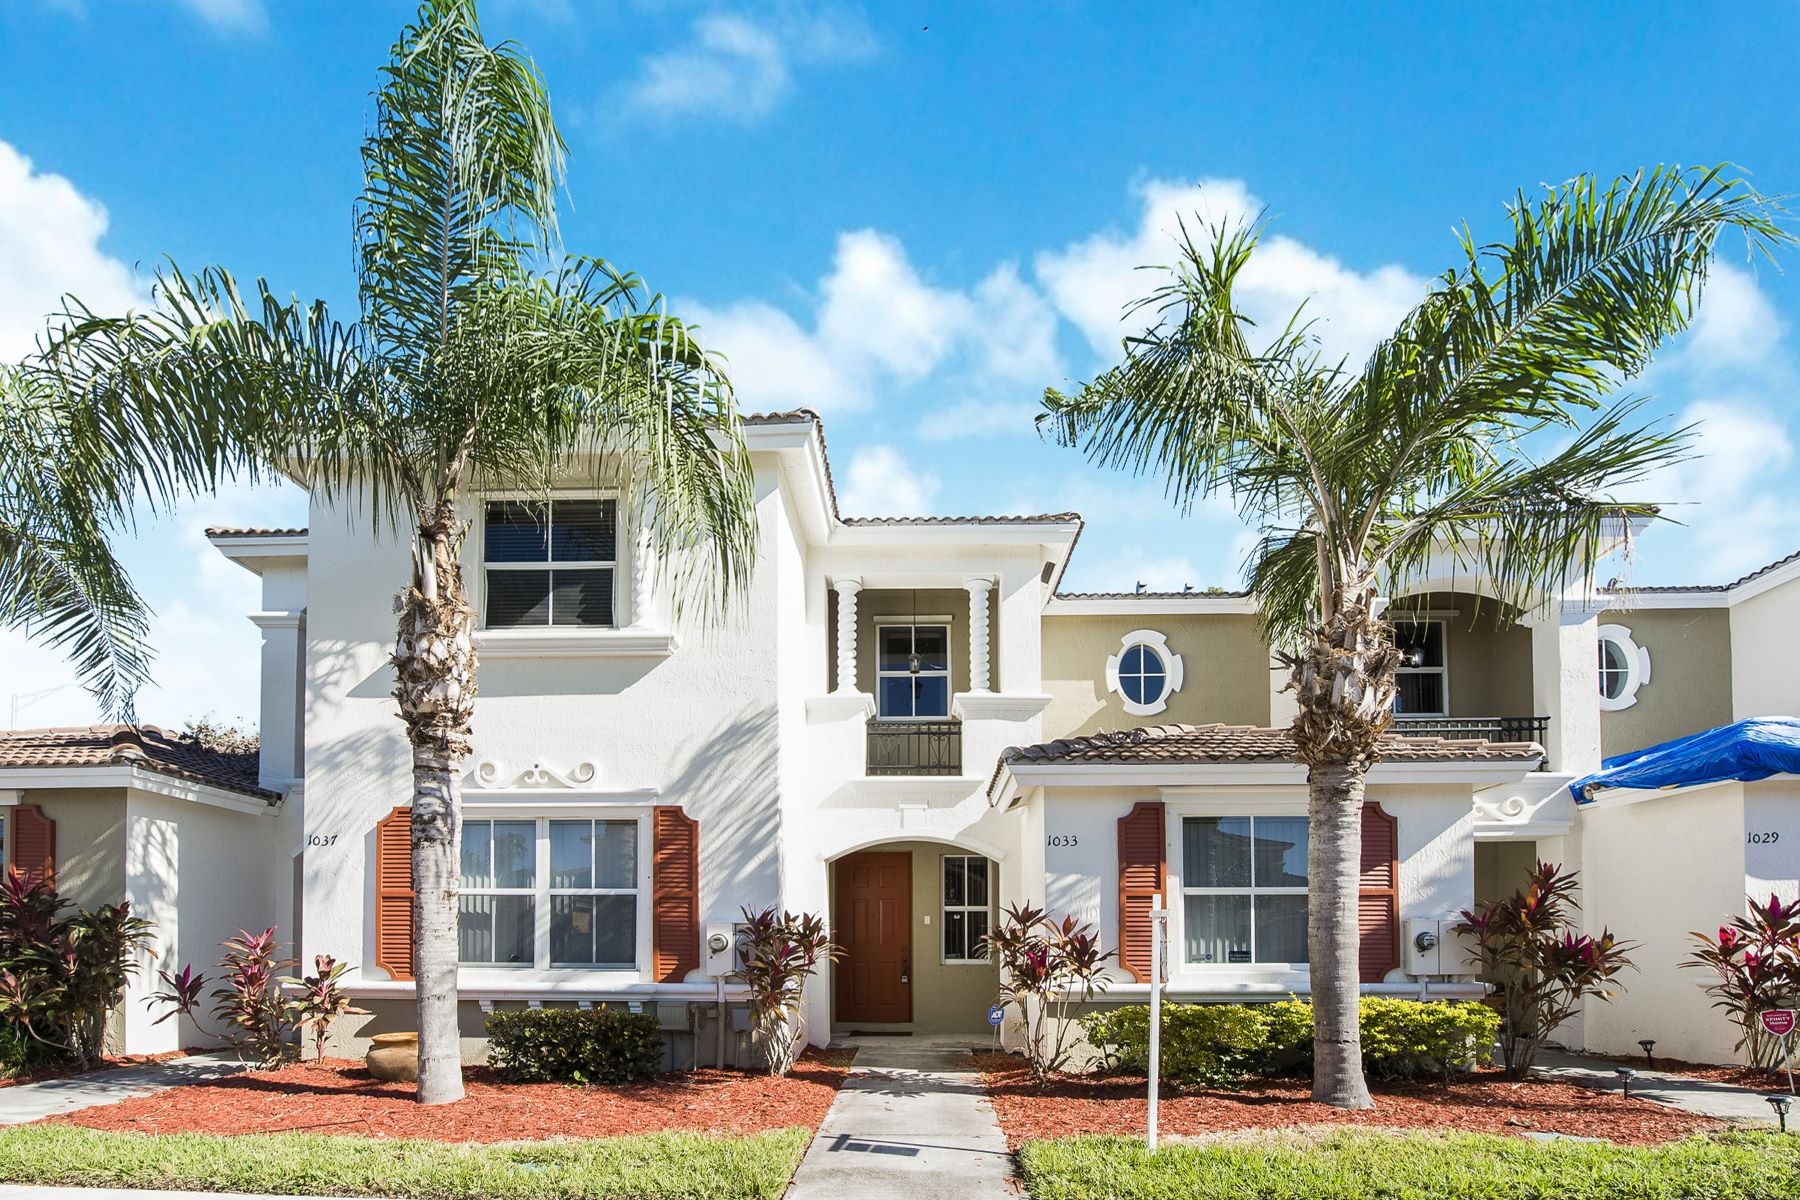 townhouses for Sale at 1033 Ne 42nd Pl Homestead, Florida 33033 United States